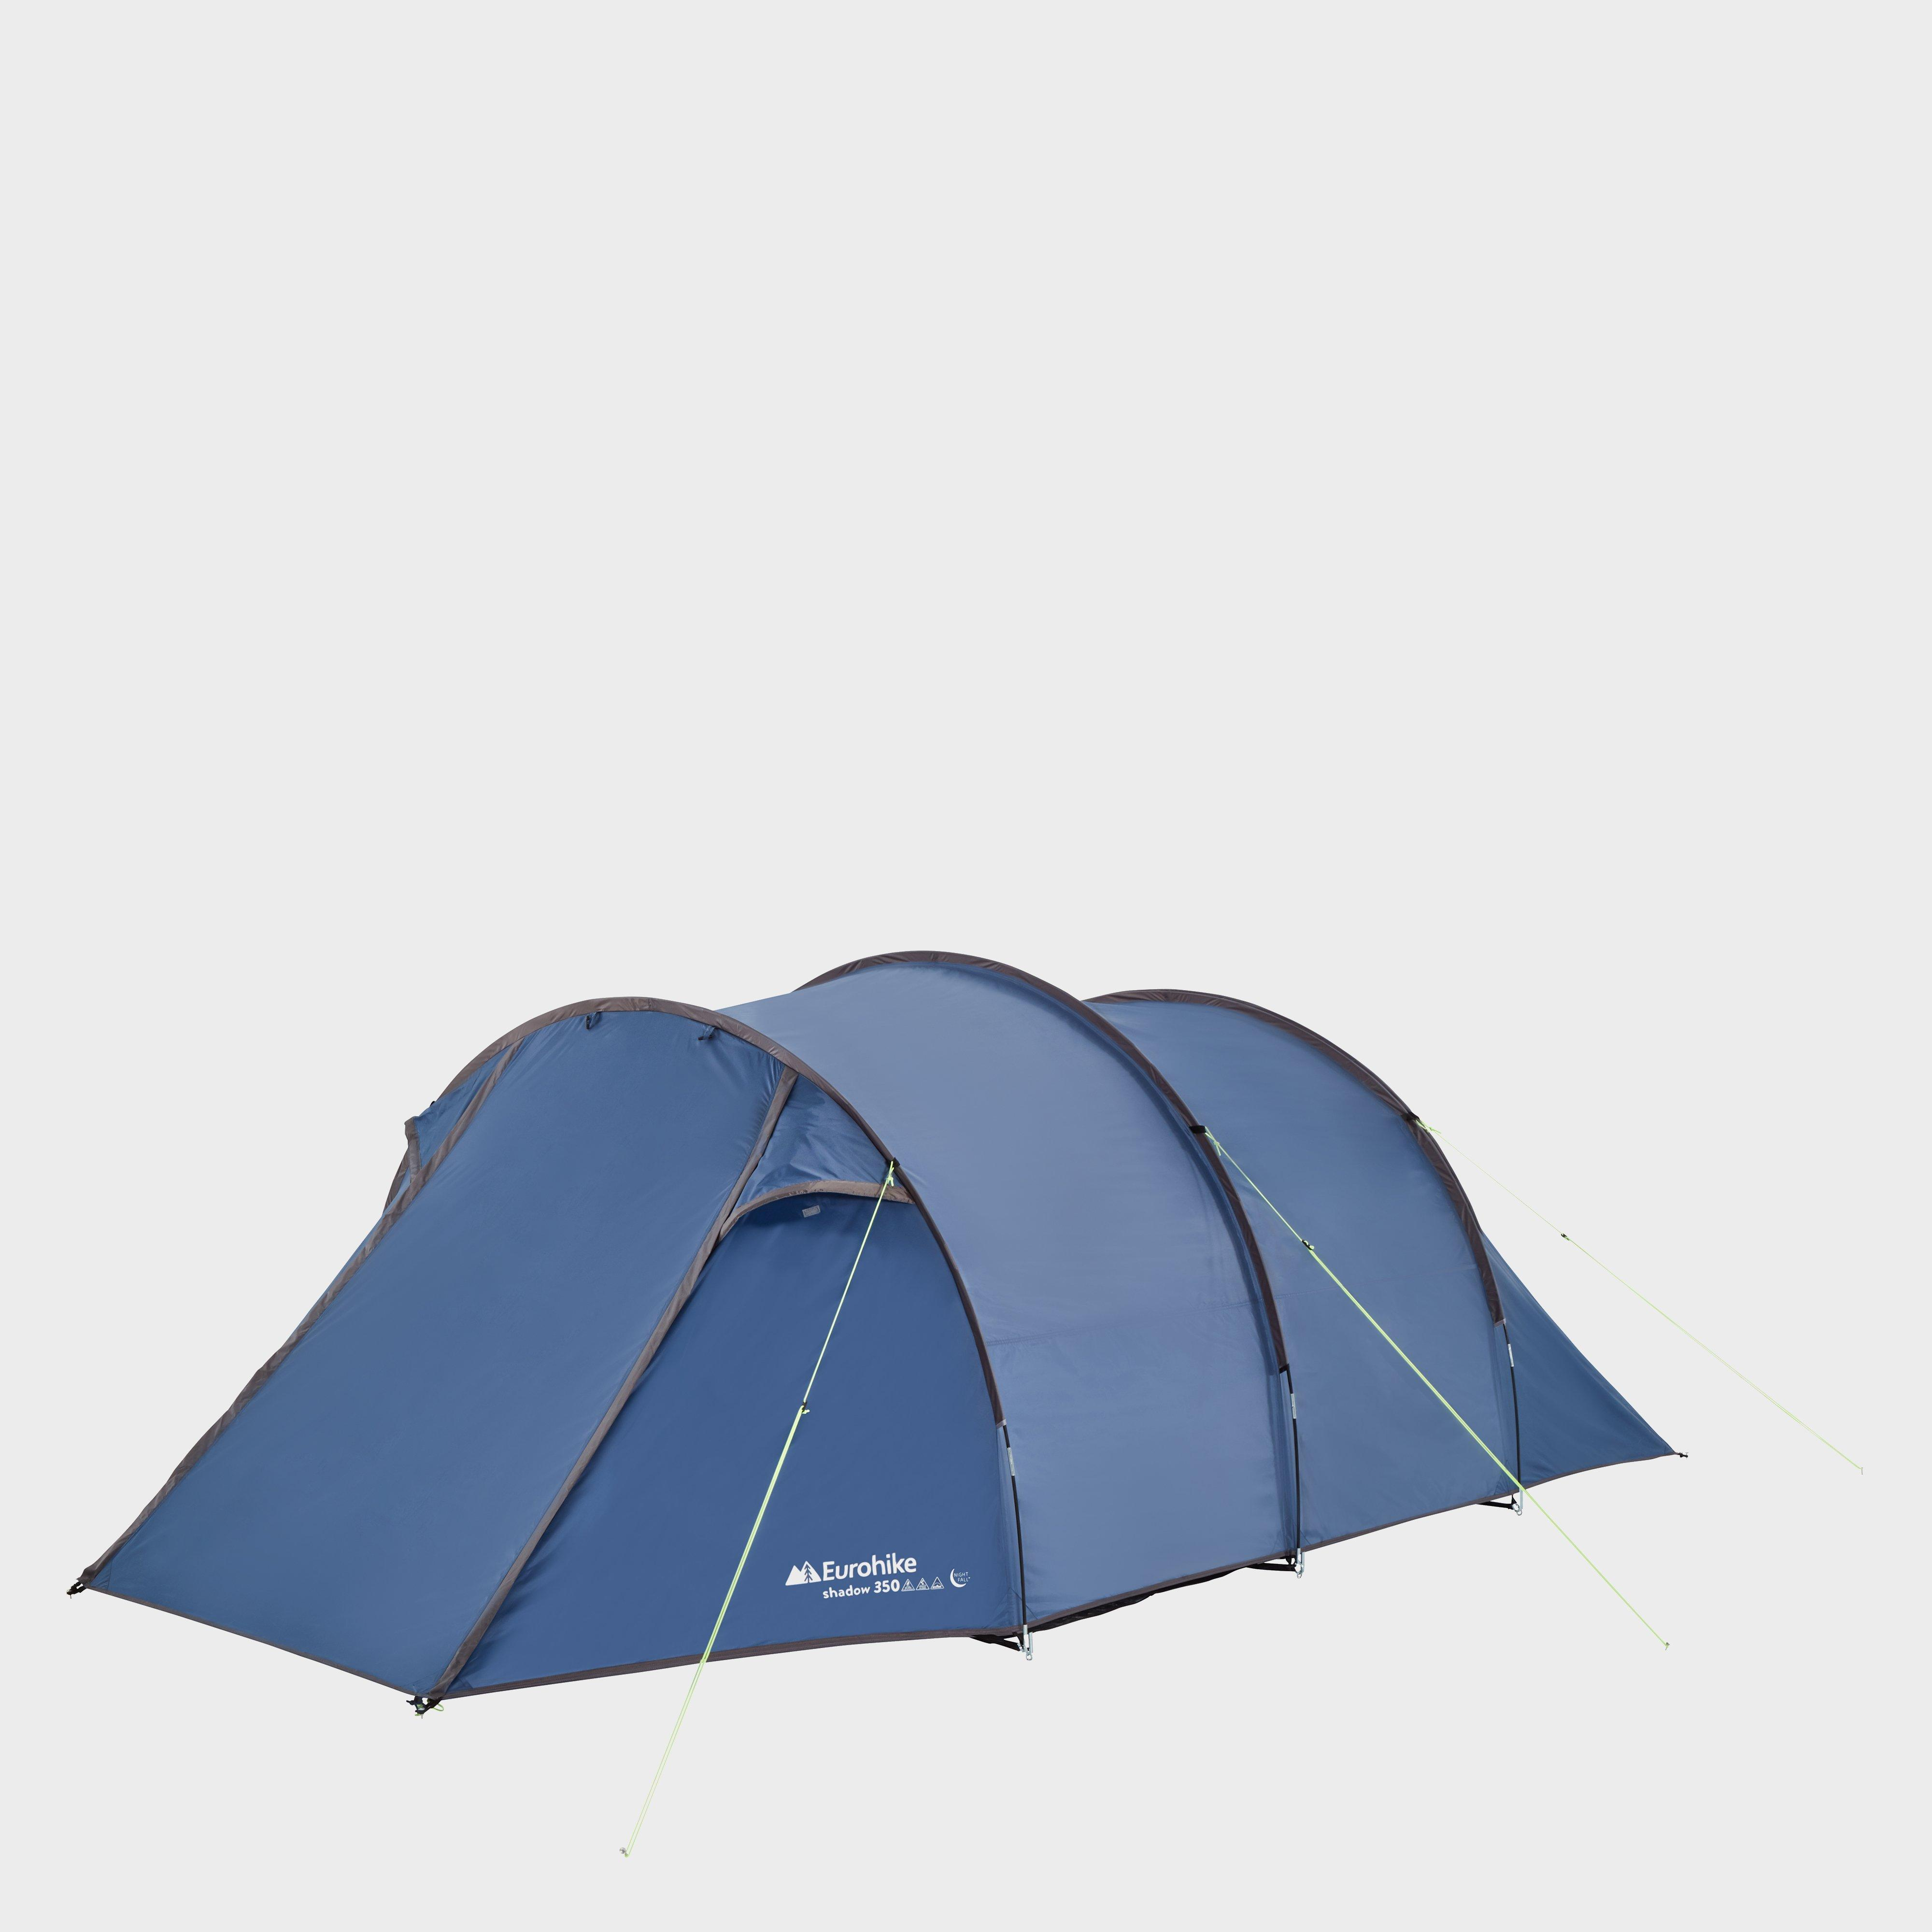 Eurohike Eurohike Shadow 350 Nightfall Tent - Navy, Navy